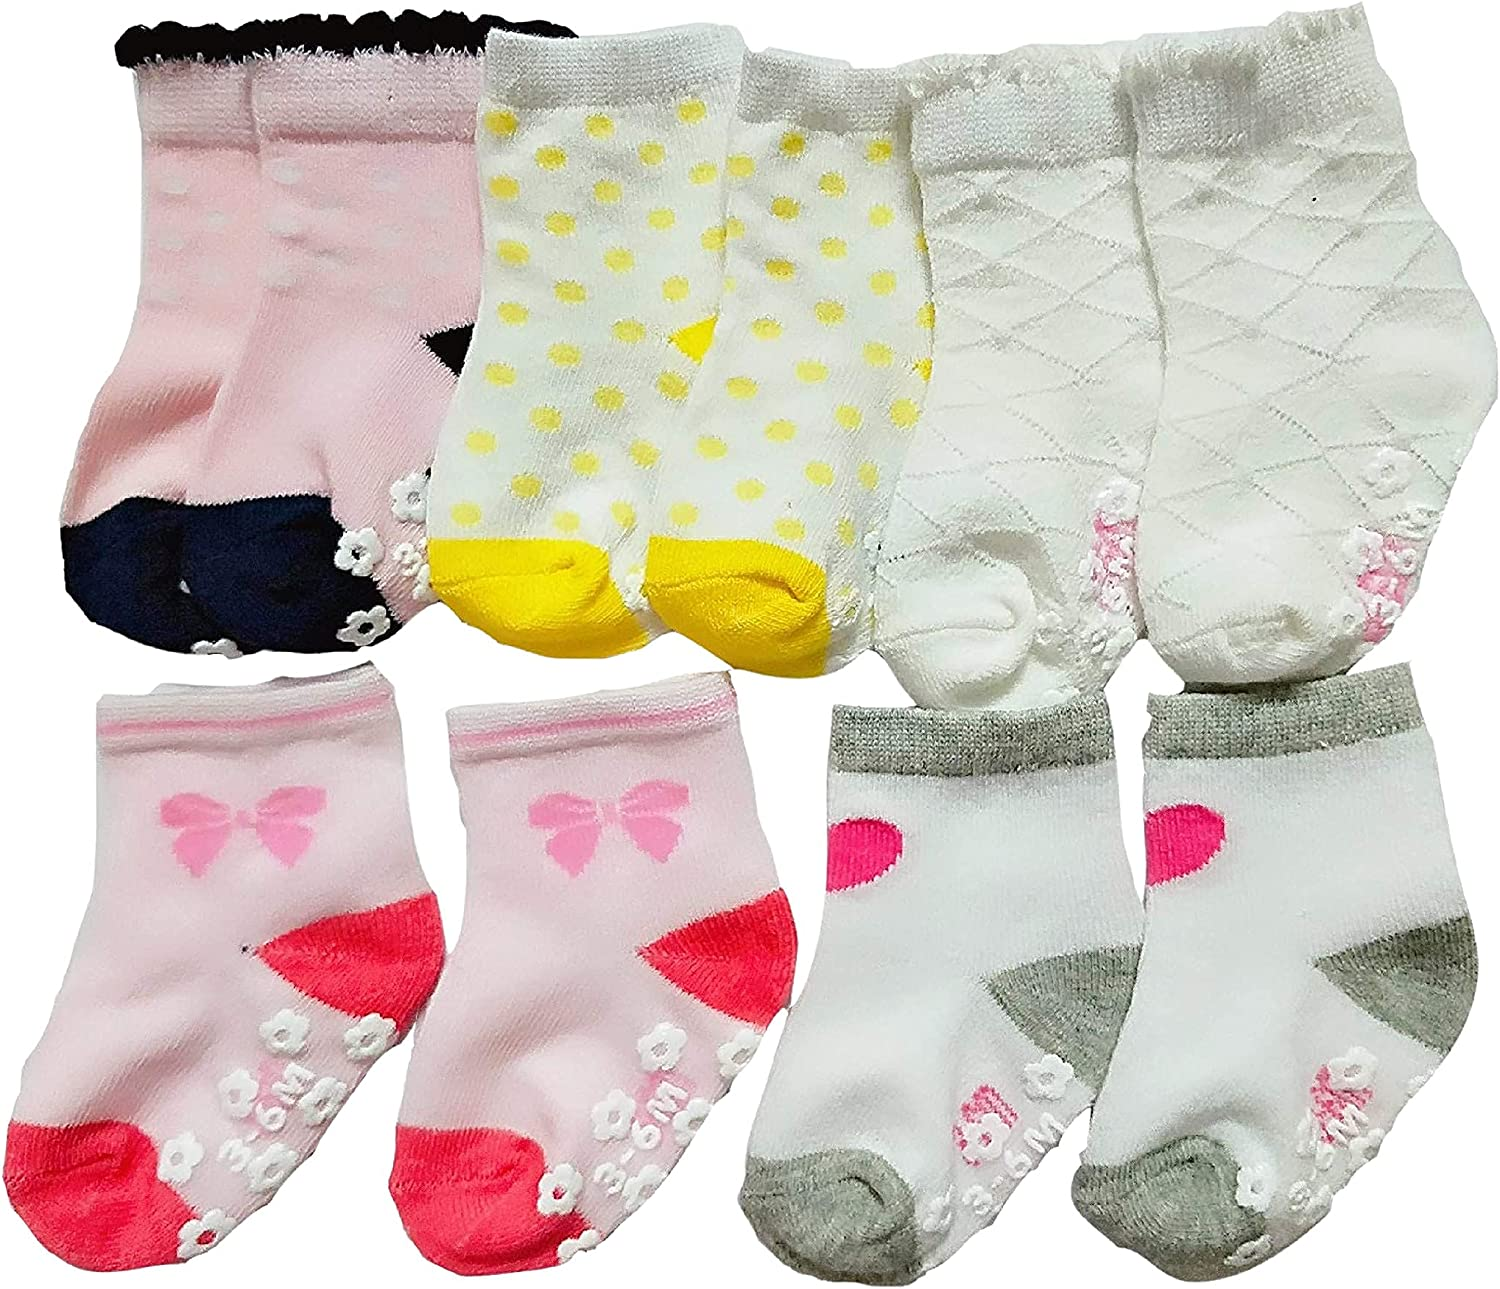 Baby Socks 5 Pack with Non-Slip (6-12 Months, girls)